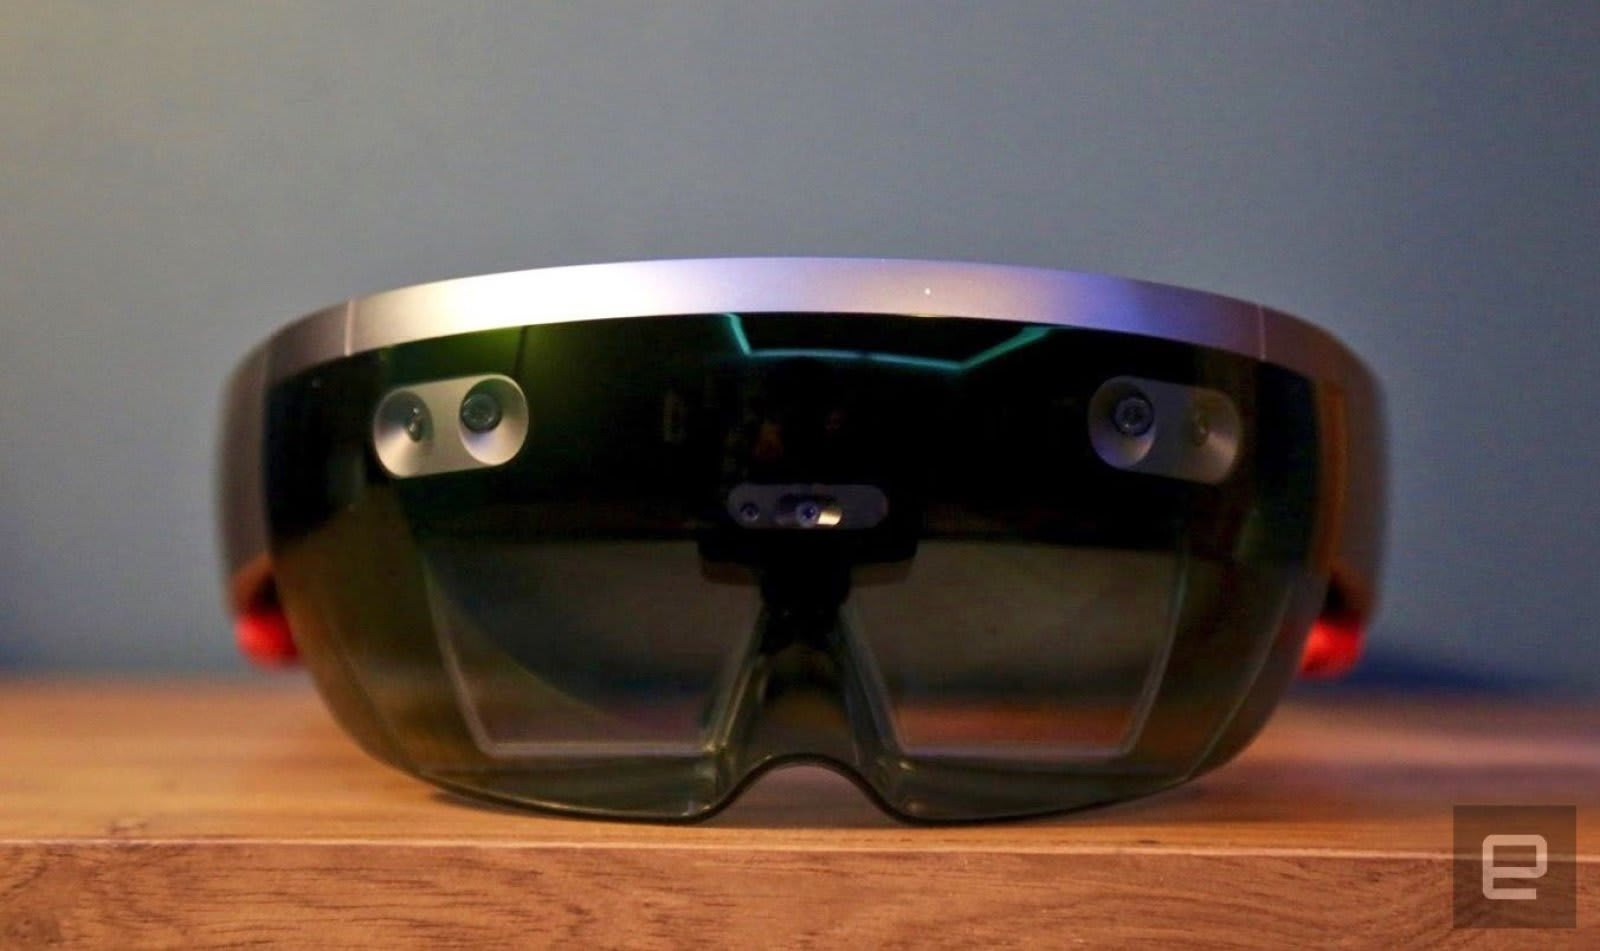 Microsoft might surprise us with HoloLens 2 next month